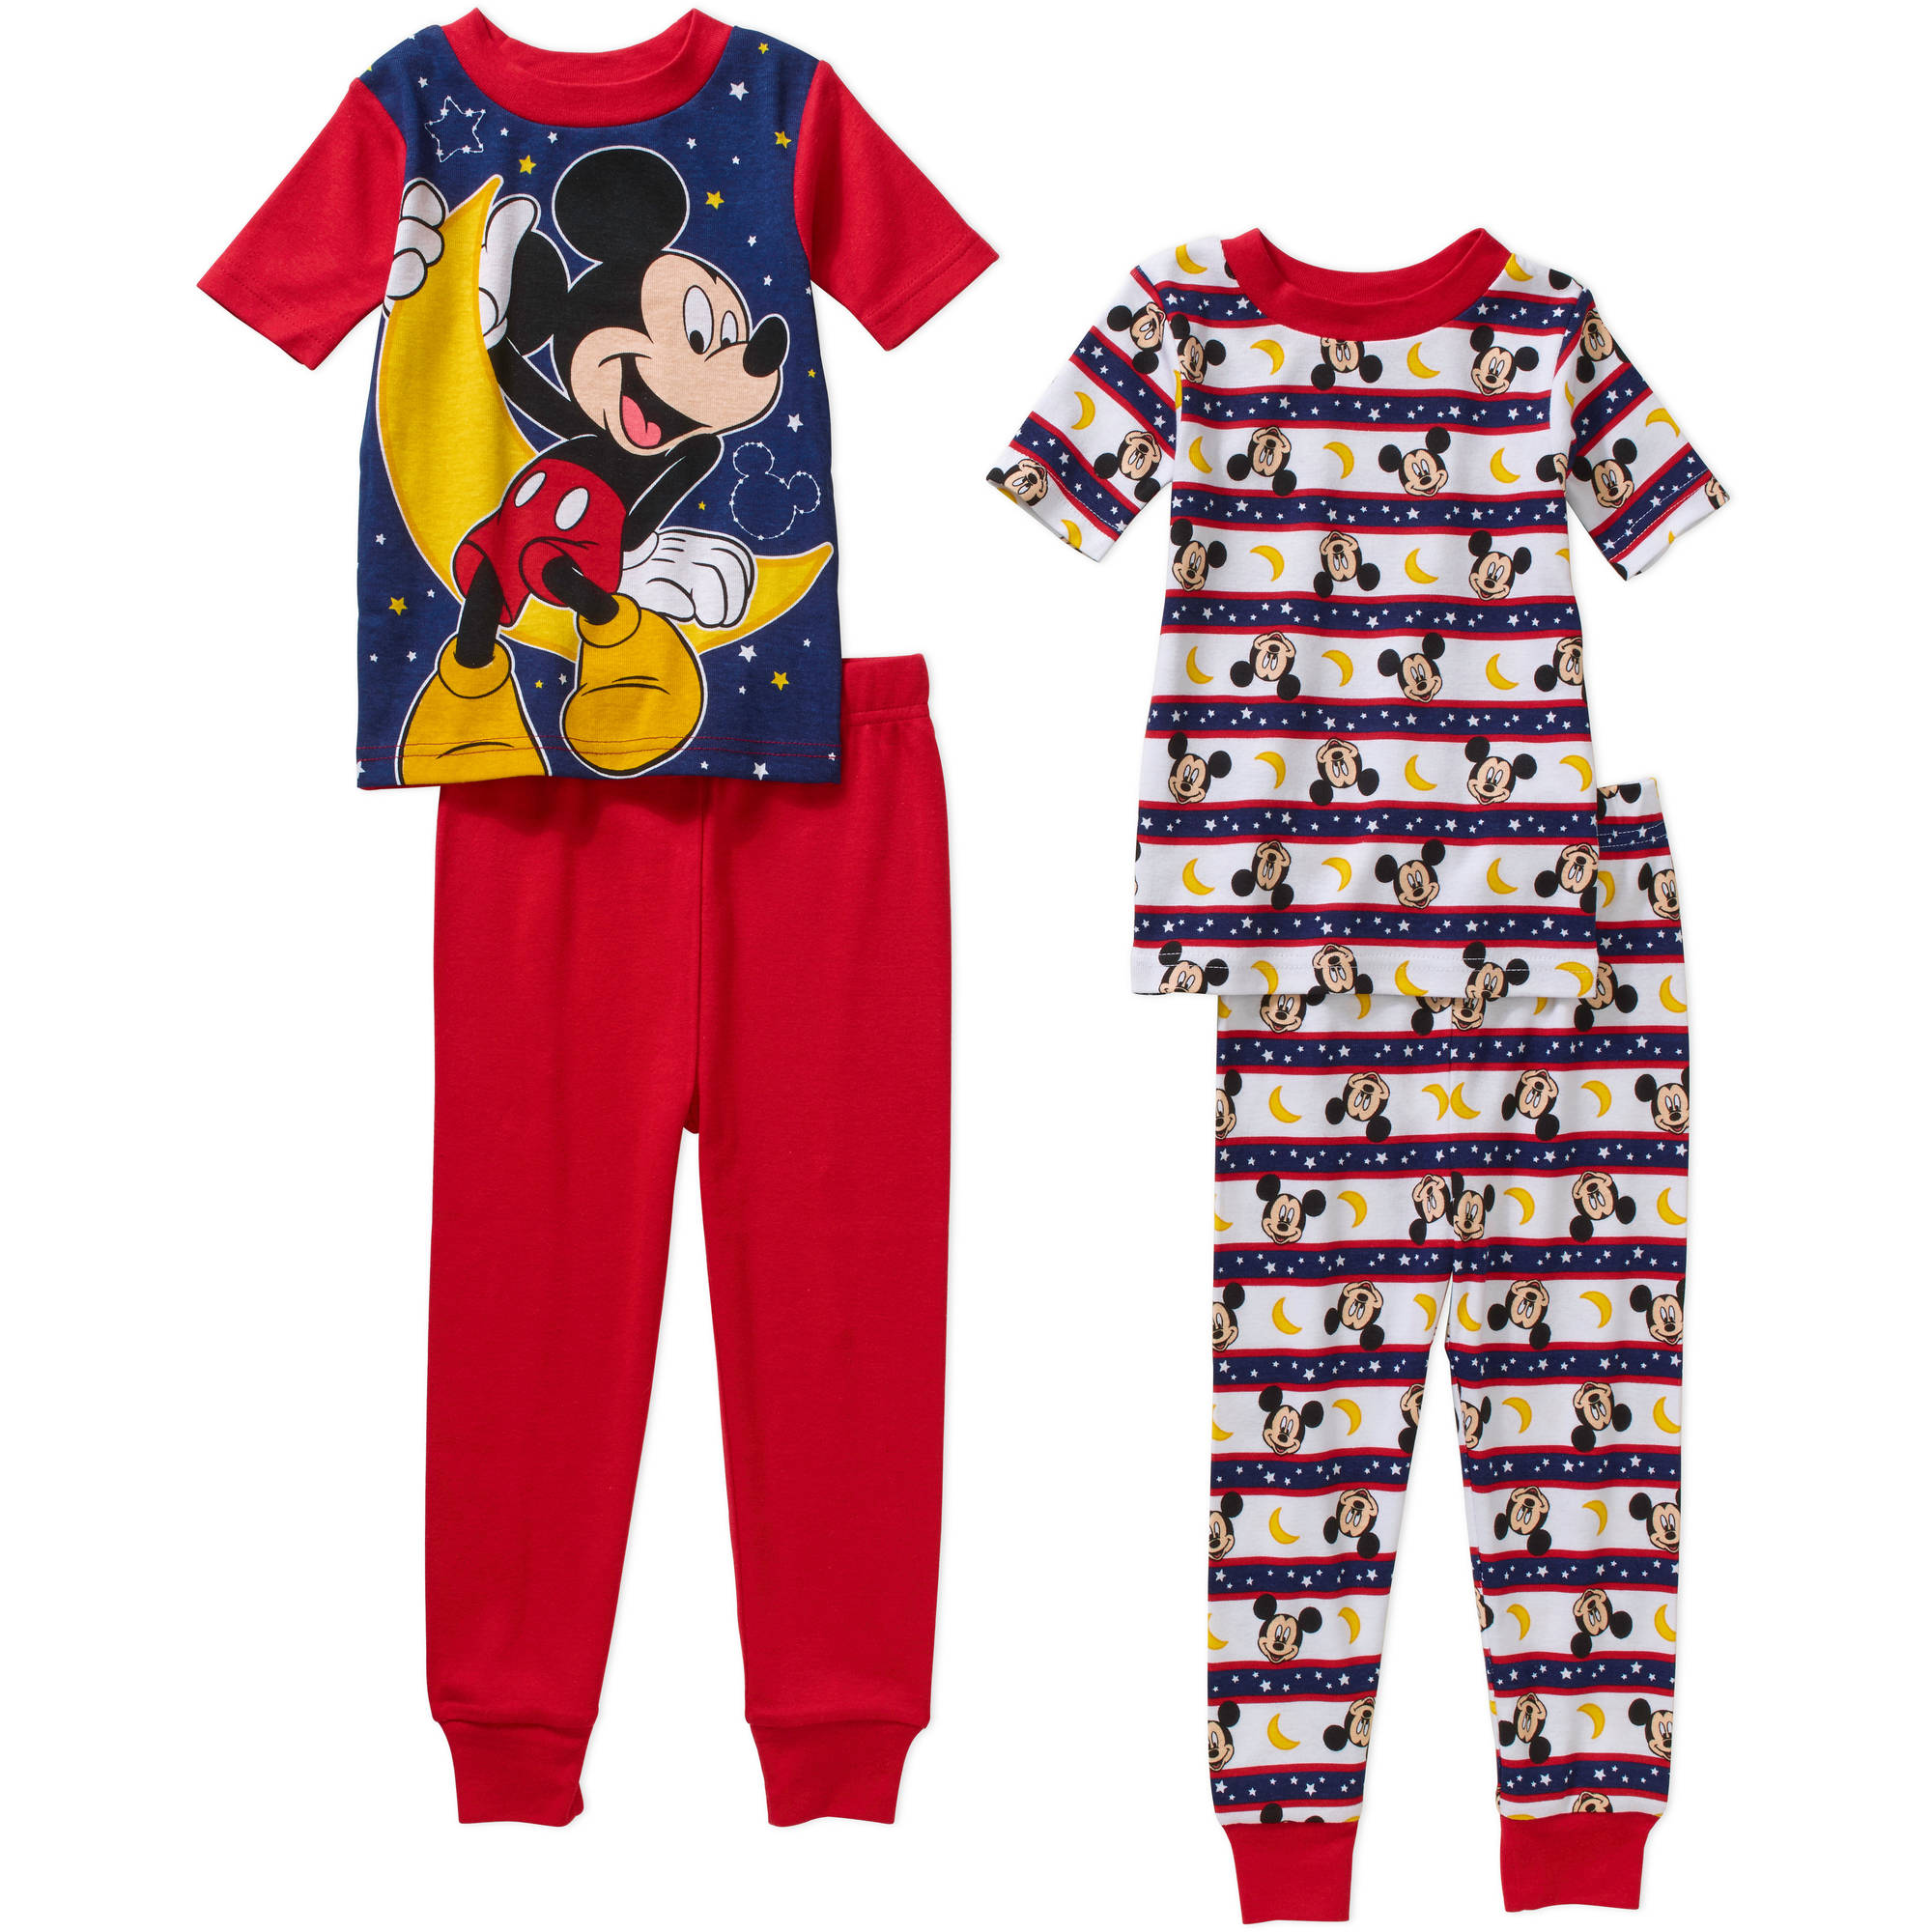 Mickey Mouse Toddler Boy Cotton Tight Fit Short Pajama Sleep Set, 4-Pieces